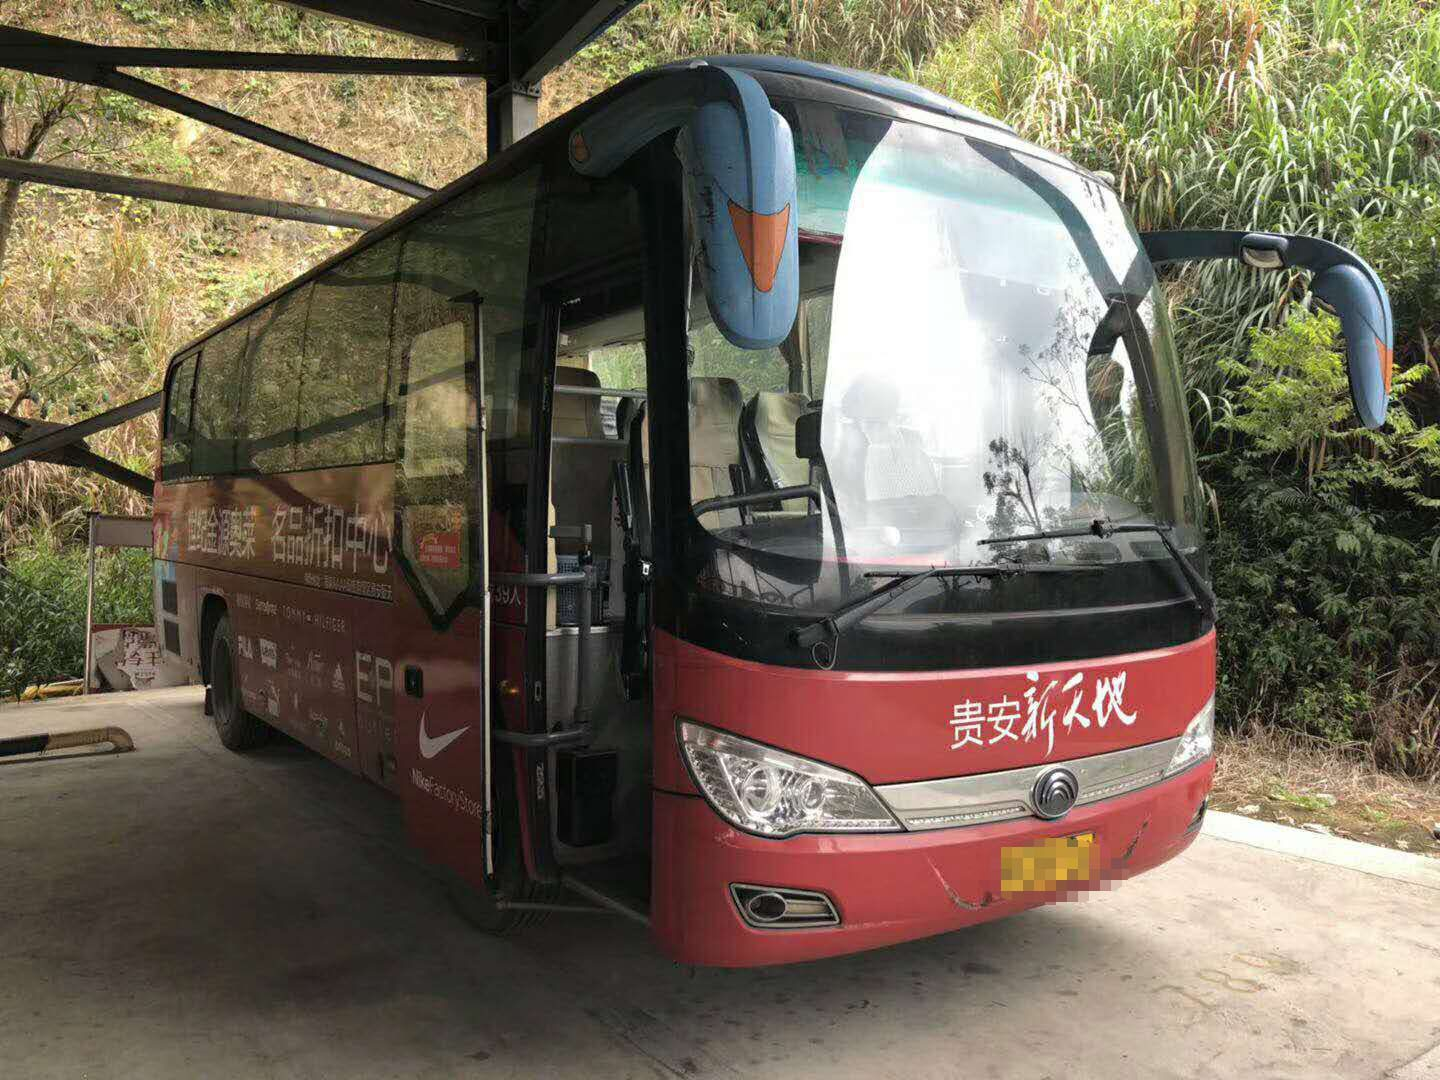 39 Seats Used YUTONG Buses 2015 Year For The Passenger And Traveling